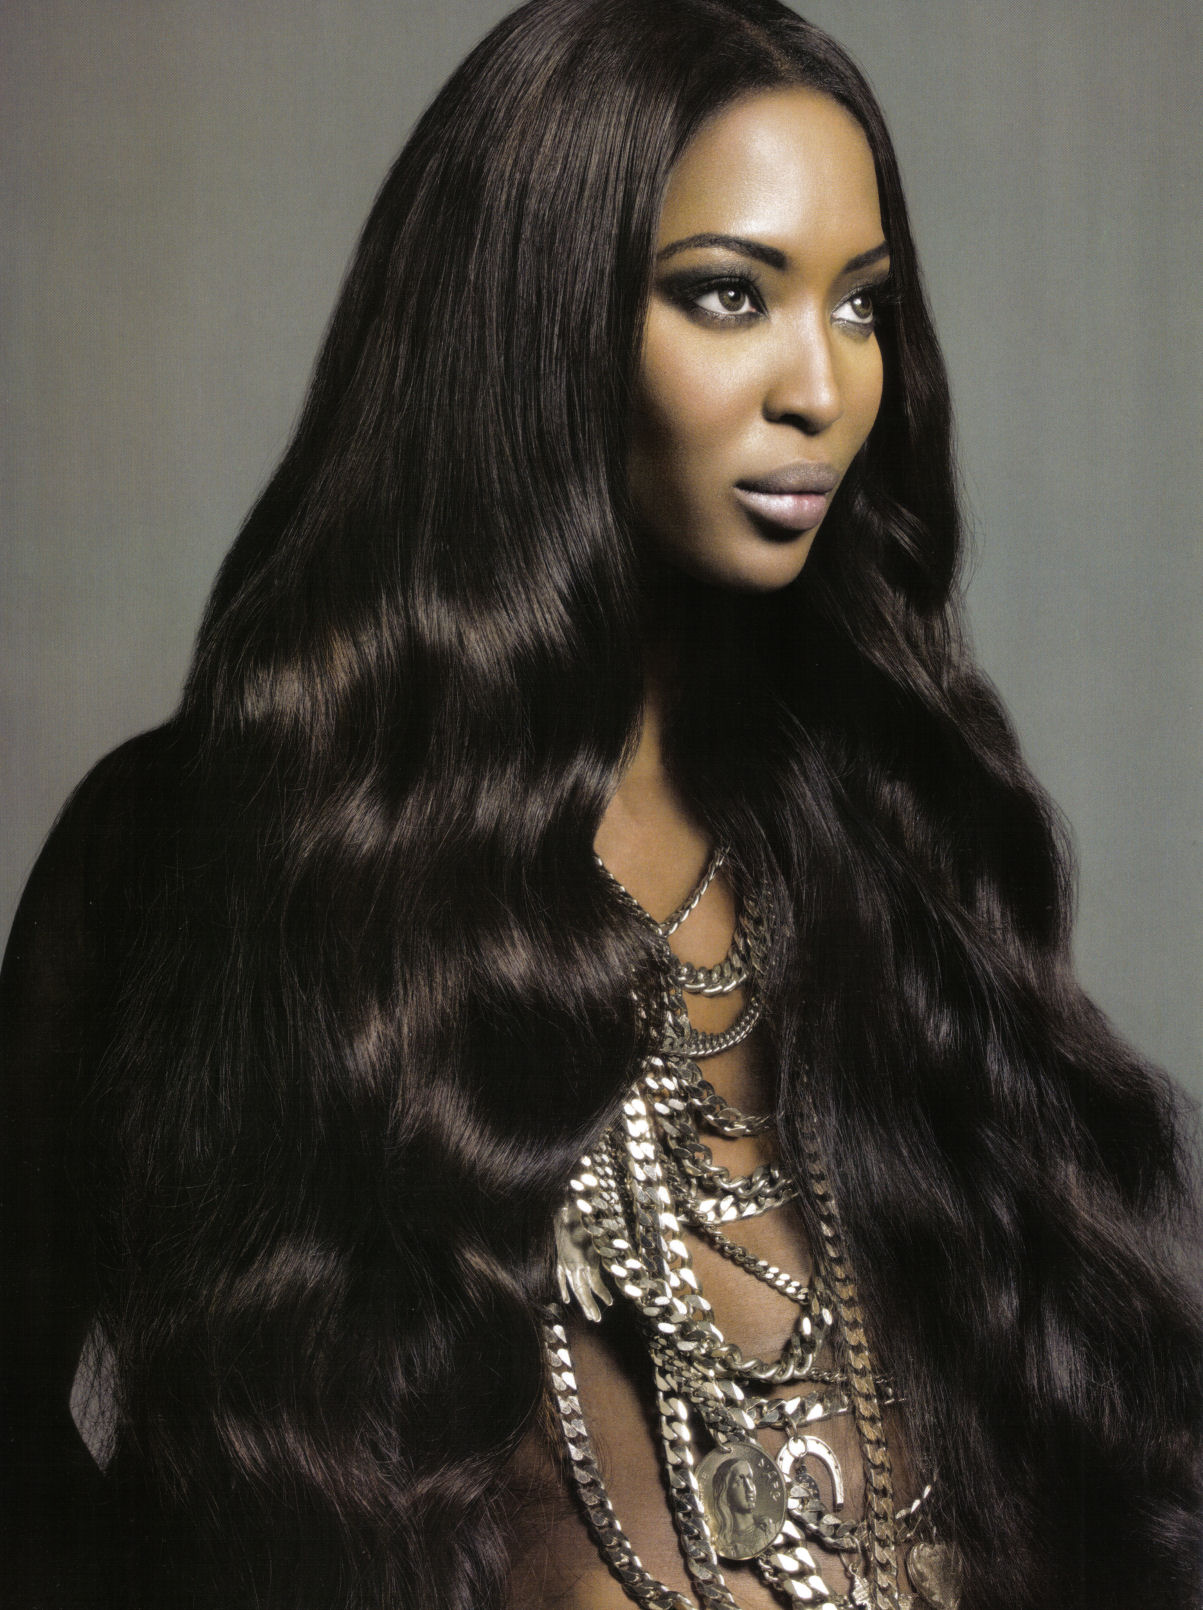 The best side of Naomi Campbell | Hey Crazy